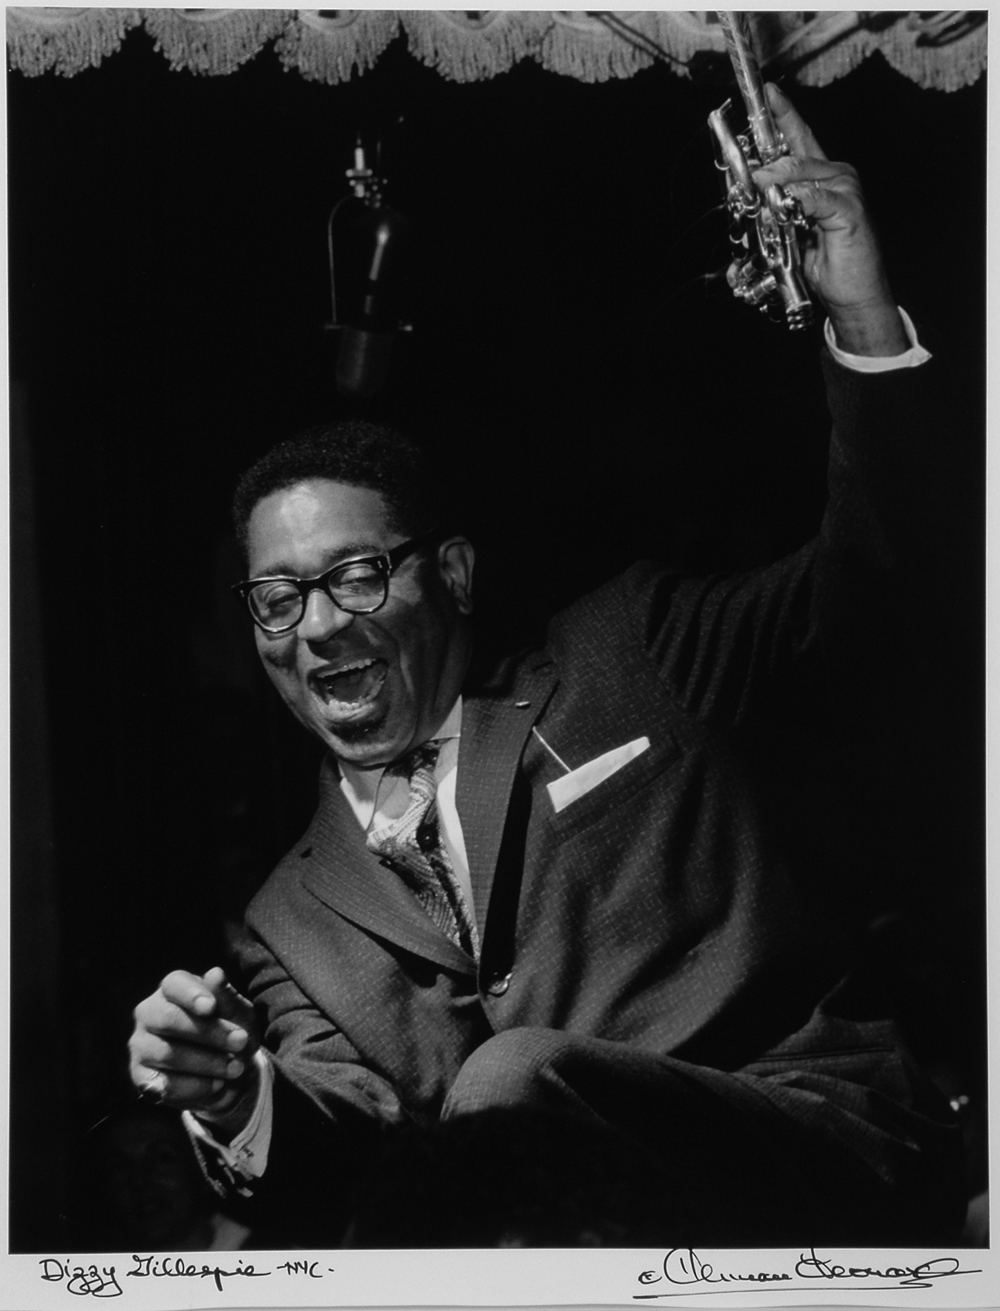 a biography of fats navarro an american jazz trumpet player John birks dizzy gillespie was an african american jazz trumpet player,  that  his contemporaries ended up copying miles davis and fats navarro instead.